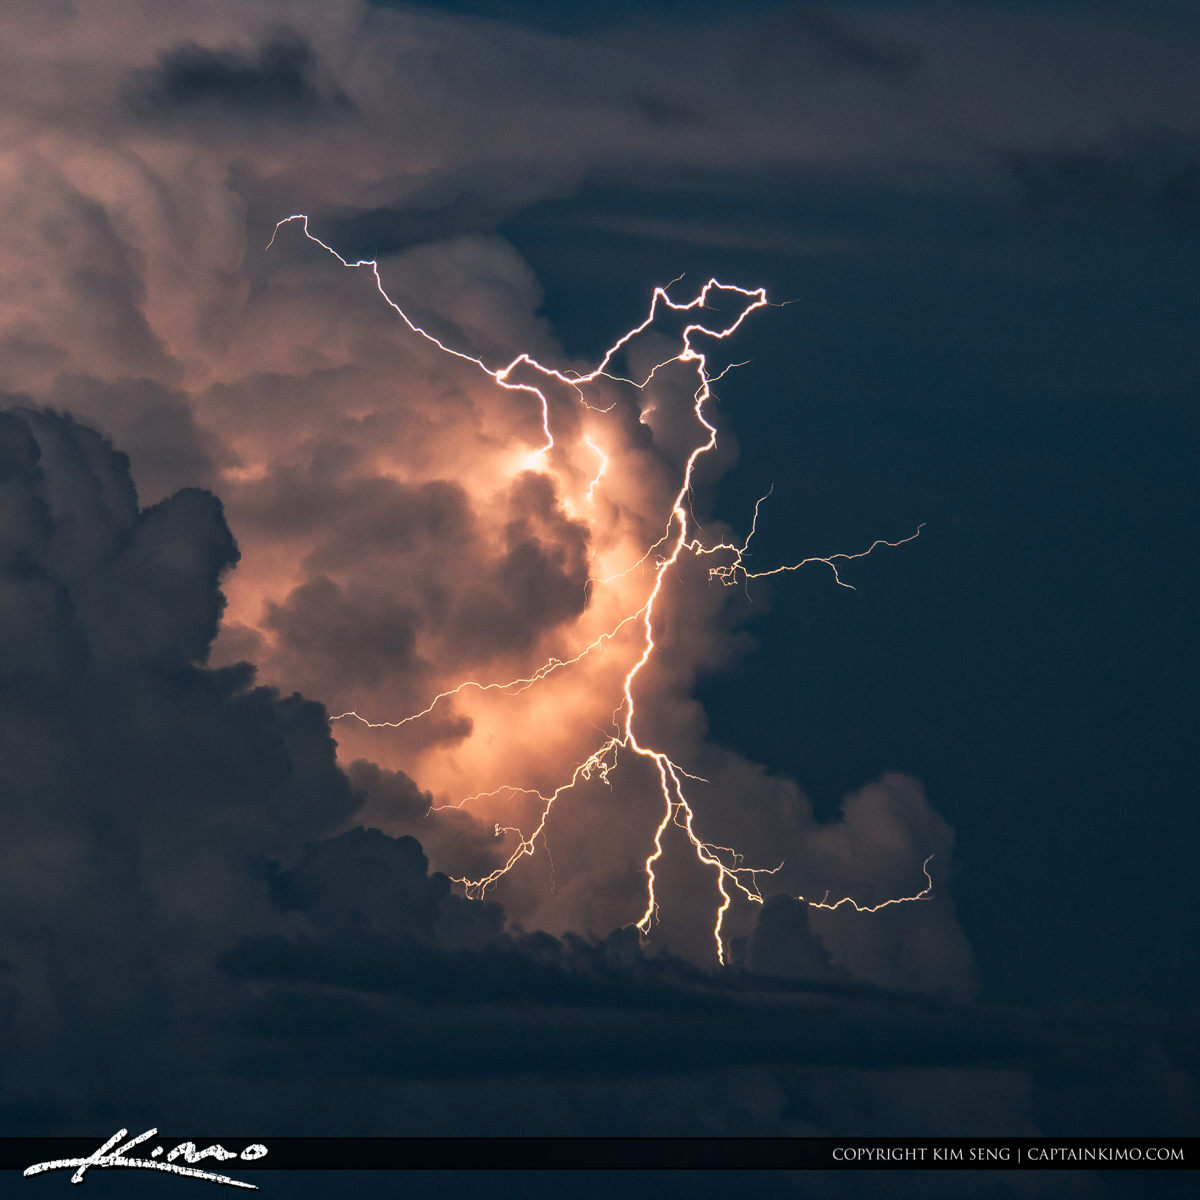 Lightning Bolt from Storm Over Ocean